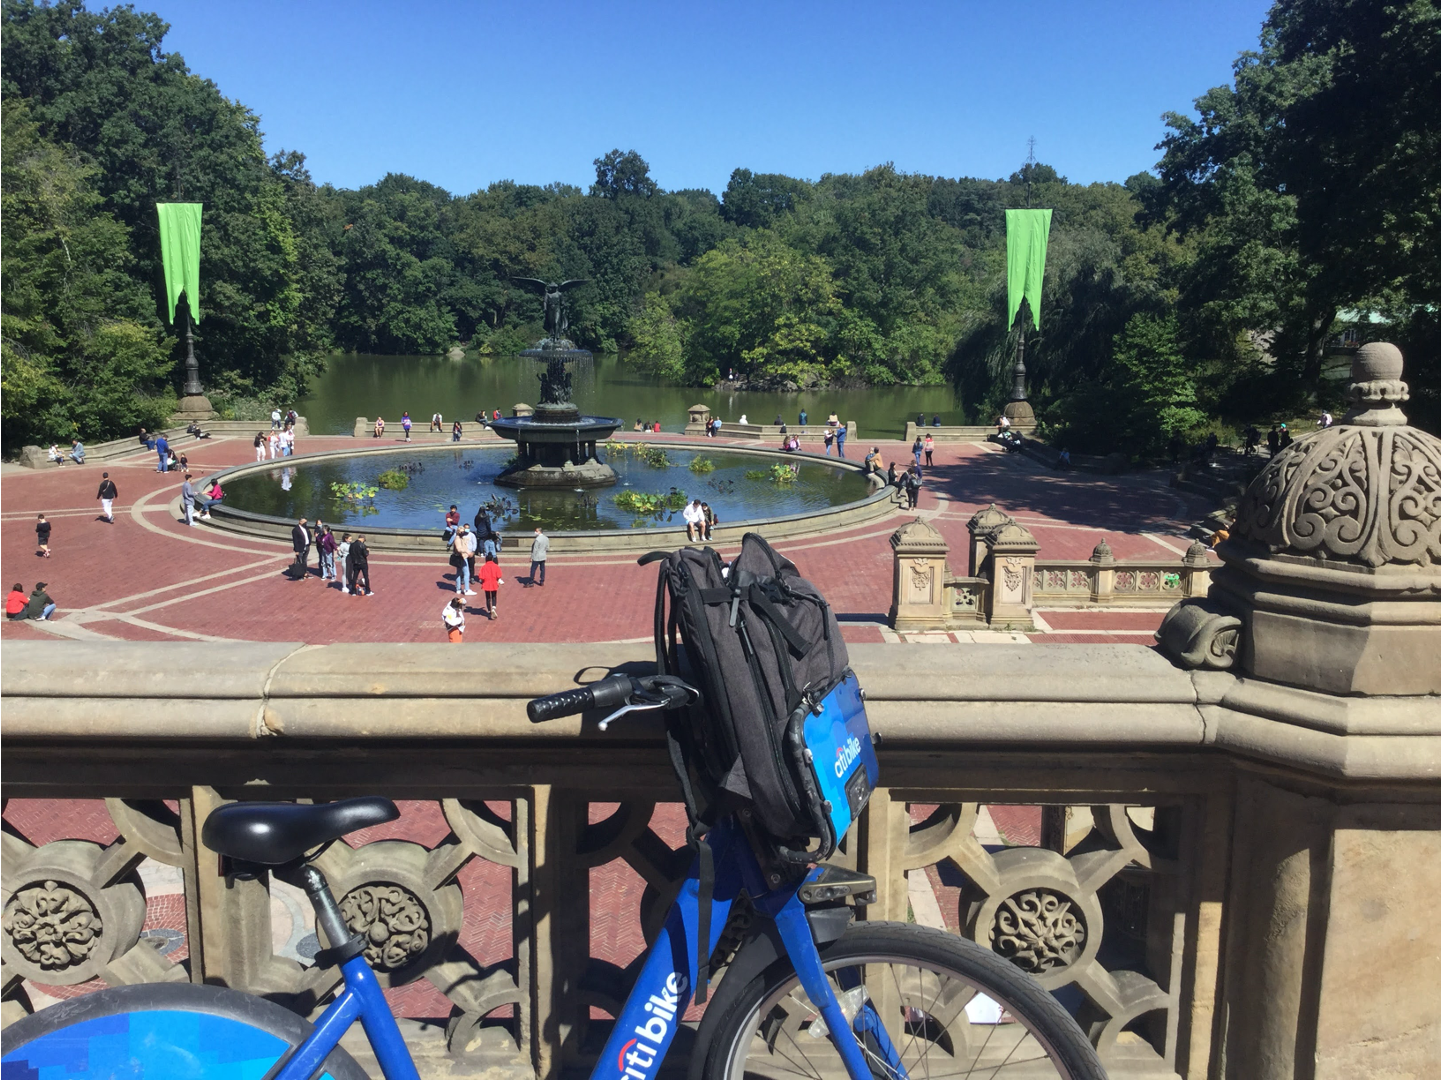 Bethesda Fountain and Bicycle